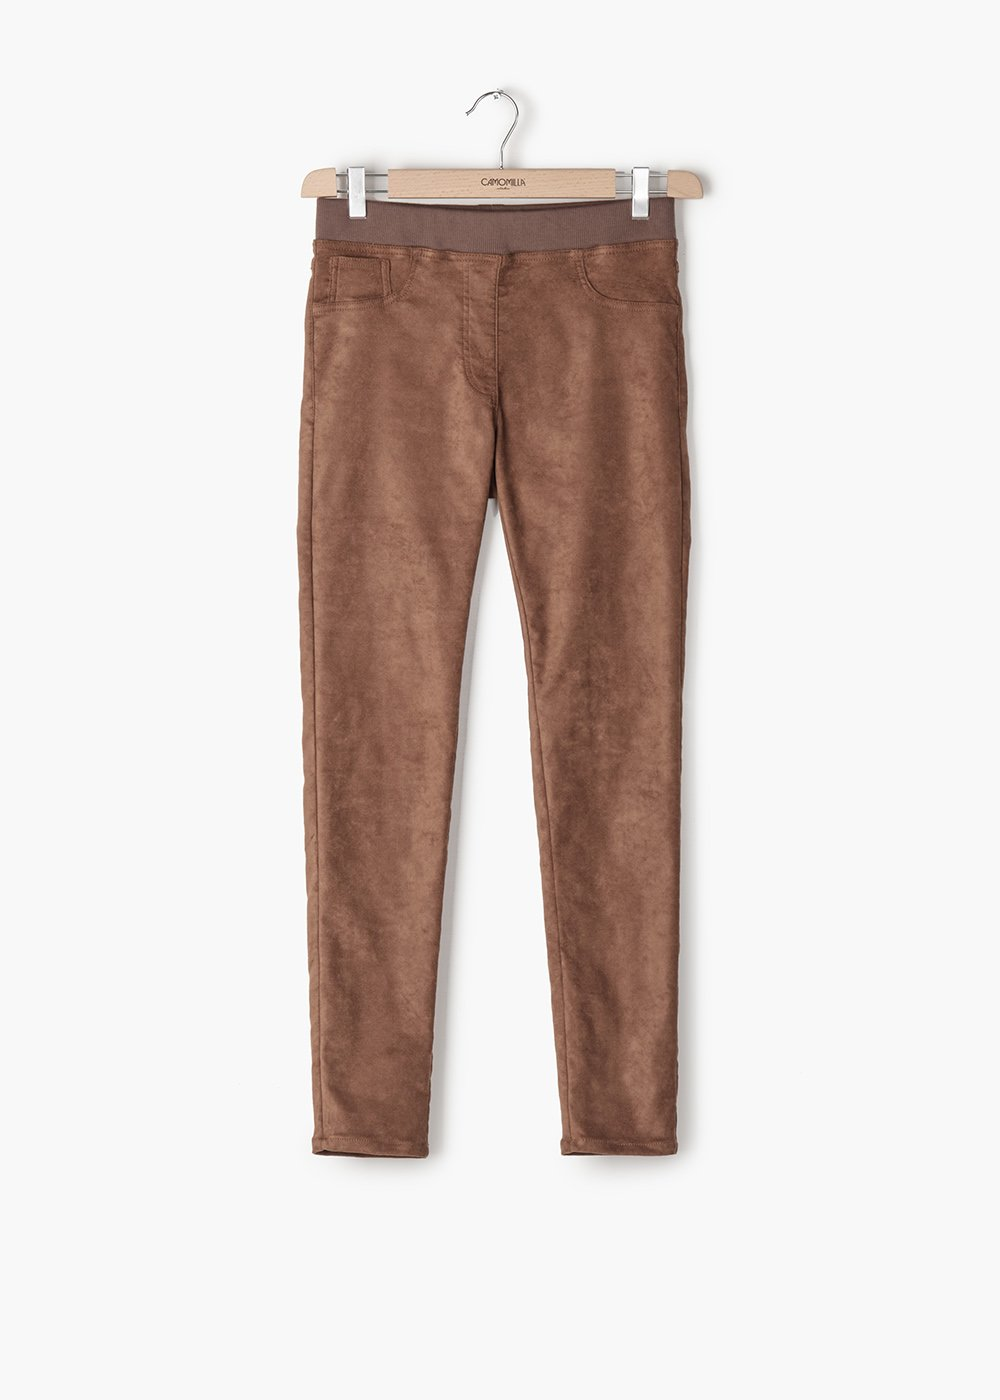 Pantaloni Kelly in eco daino con elastico in tono - Tobacco - Donna